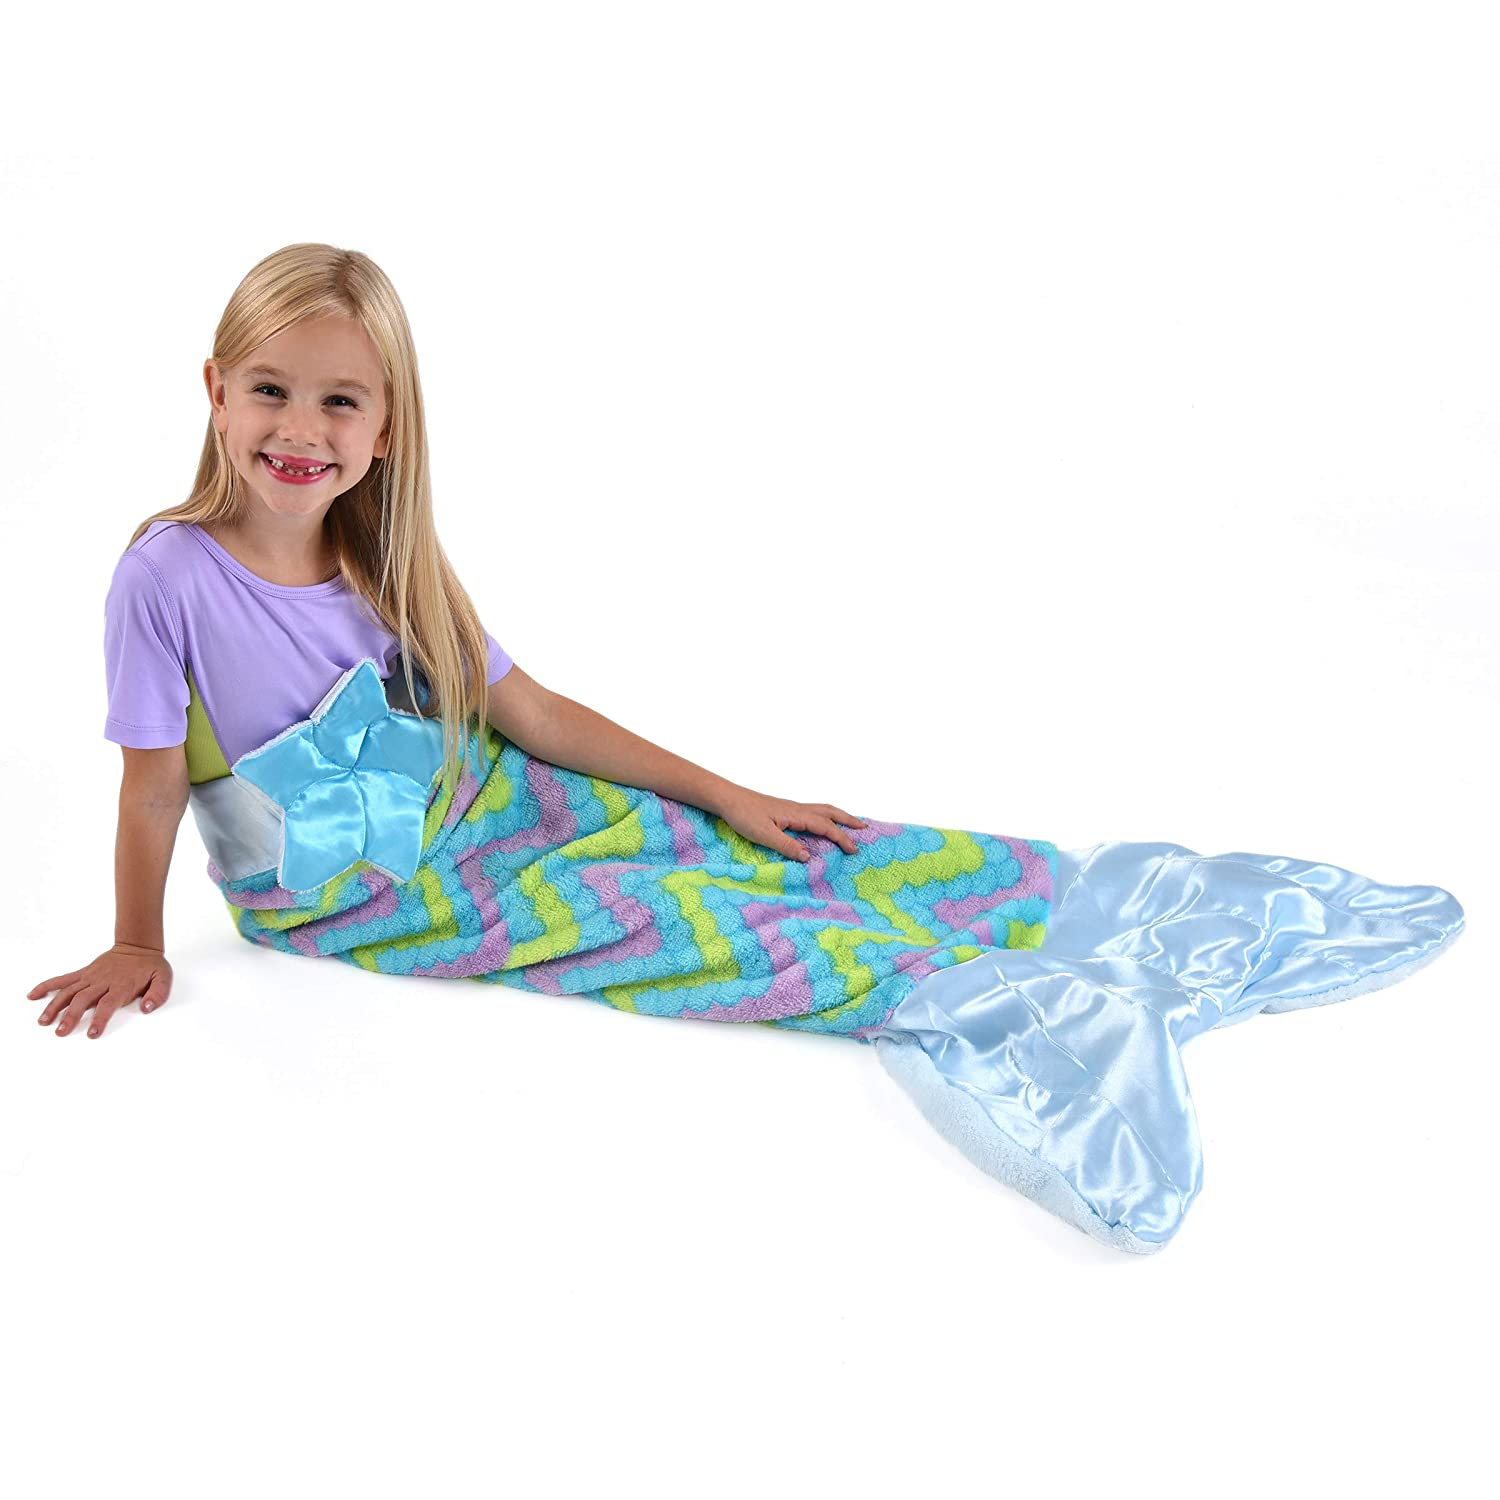 Snuggie Tails Comfy Cozy Super Soft Warm Mermaid Blanket for Kids (Blue), As Seen on TV